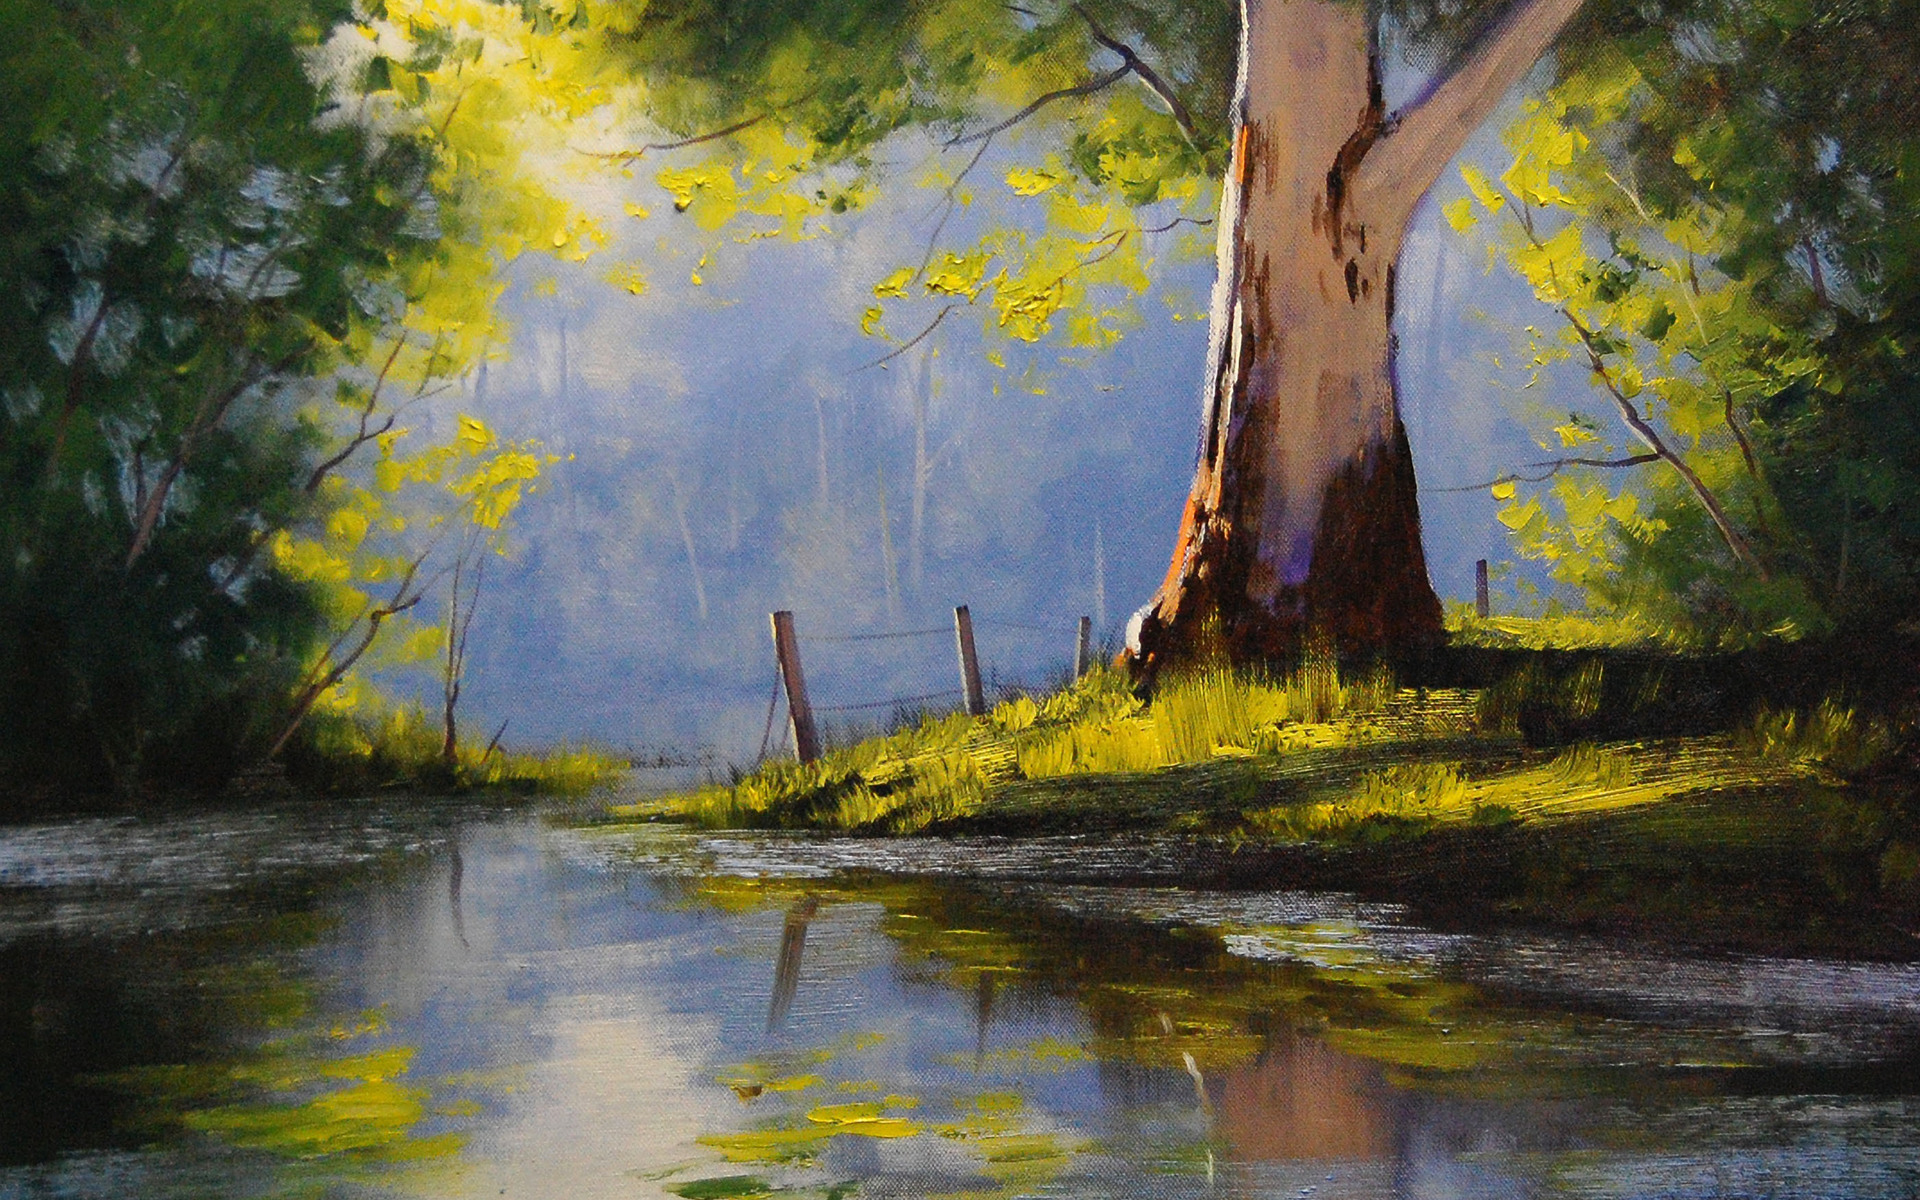 Oil painting full hd wallpaper and background image for Best paint to use for outdoor mural